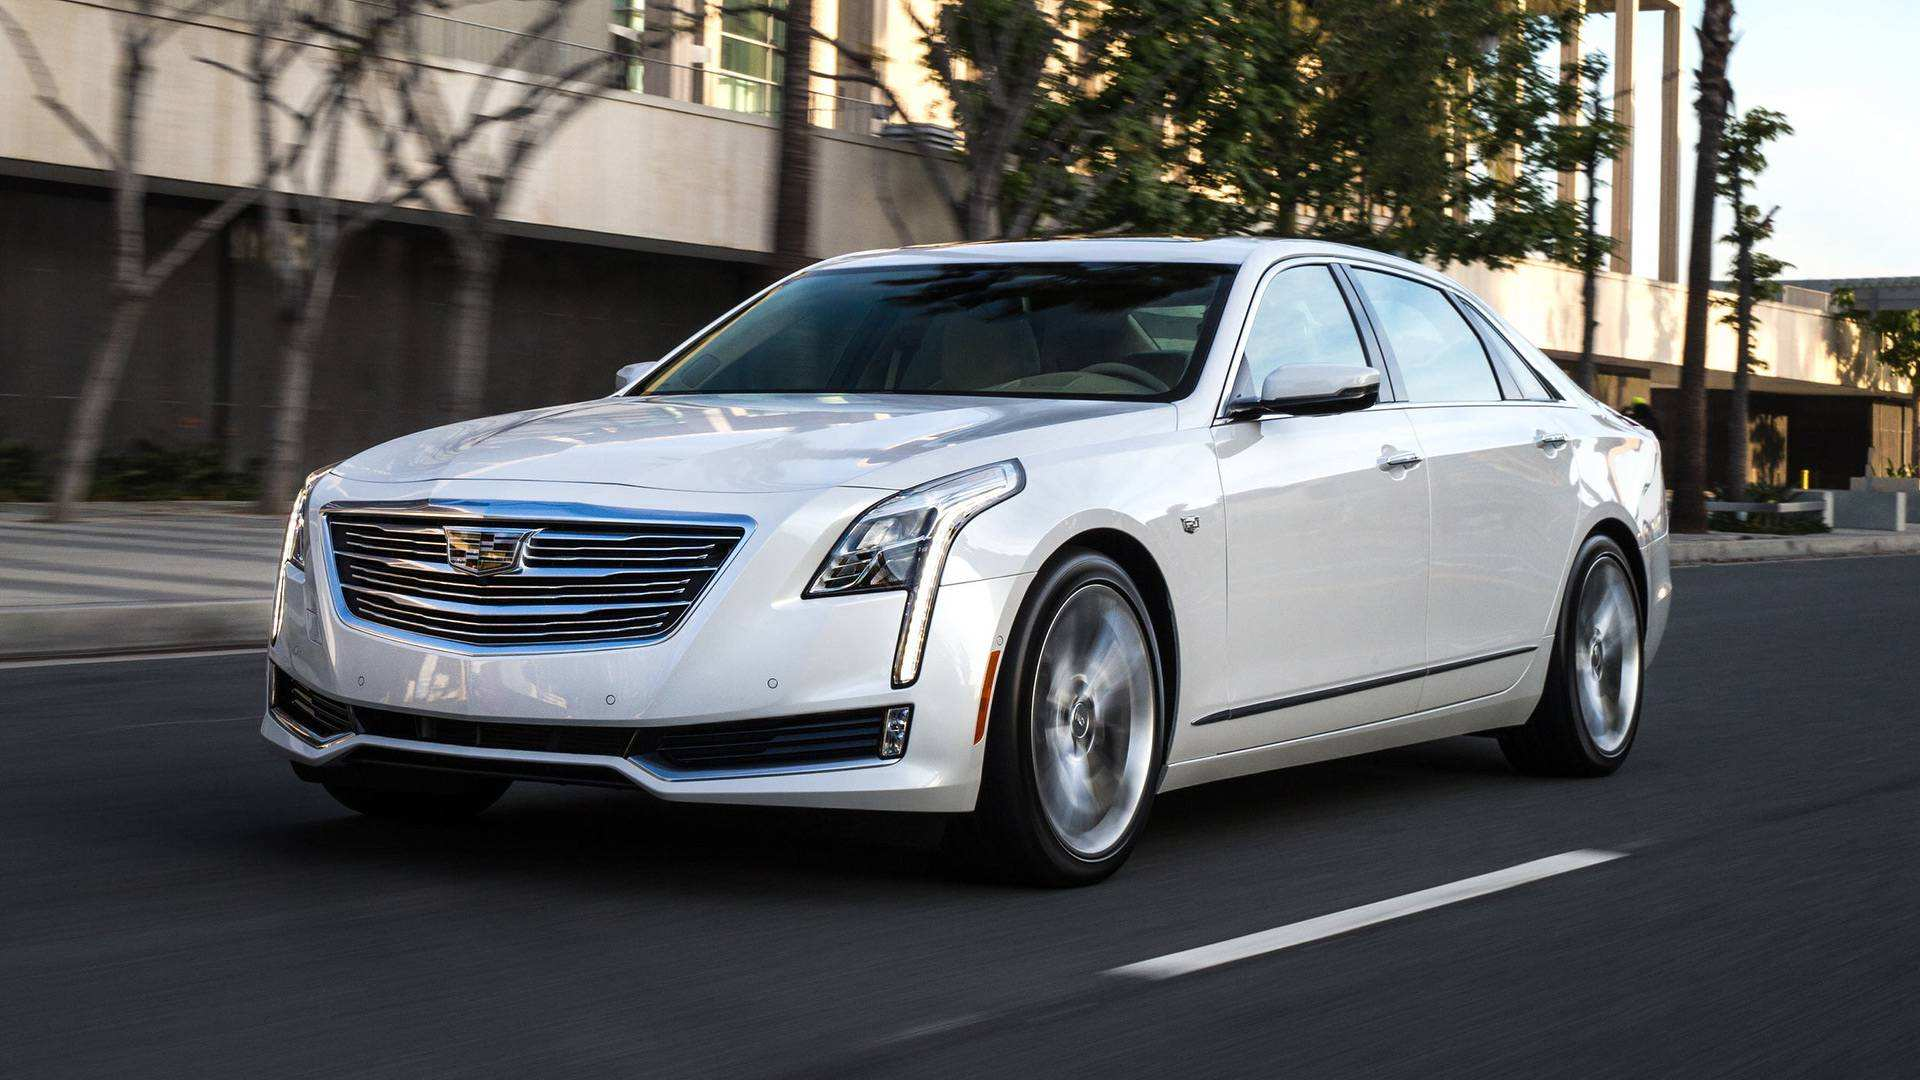 34 Best Review Cadillac Ct6 2020 Speed Test for Cadillac Ct6 2020